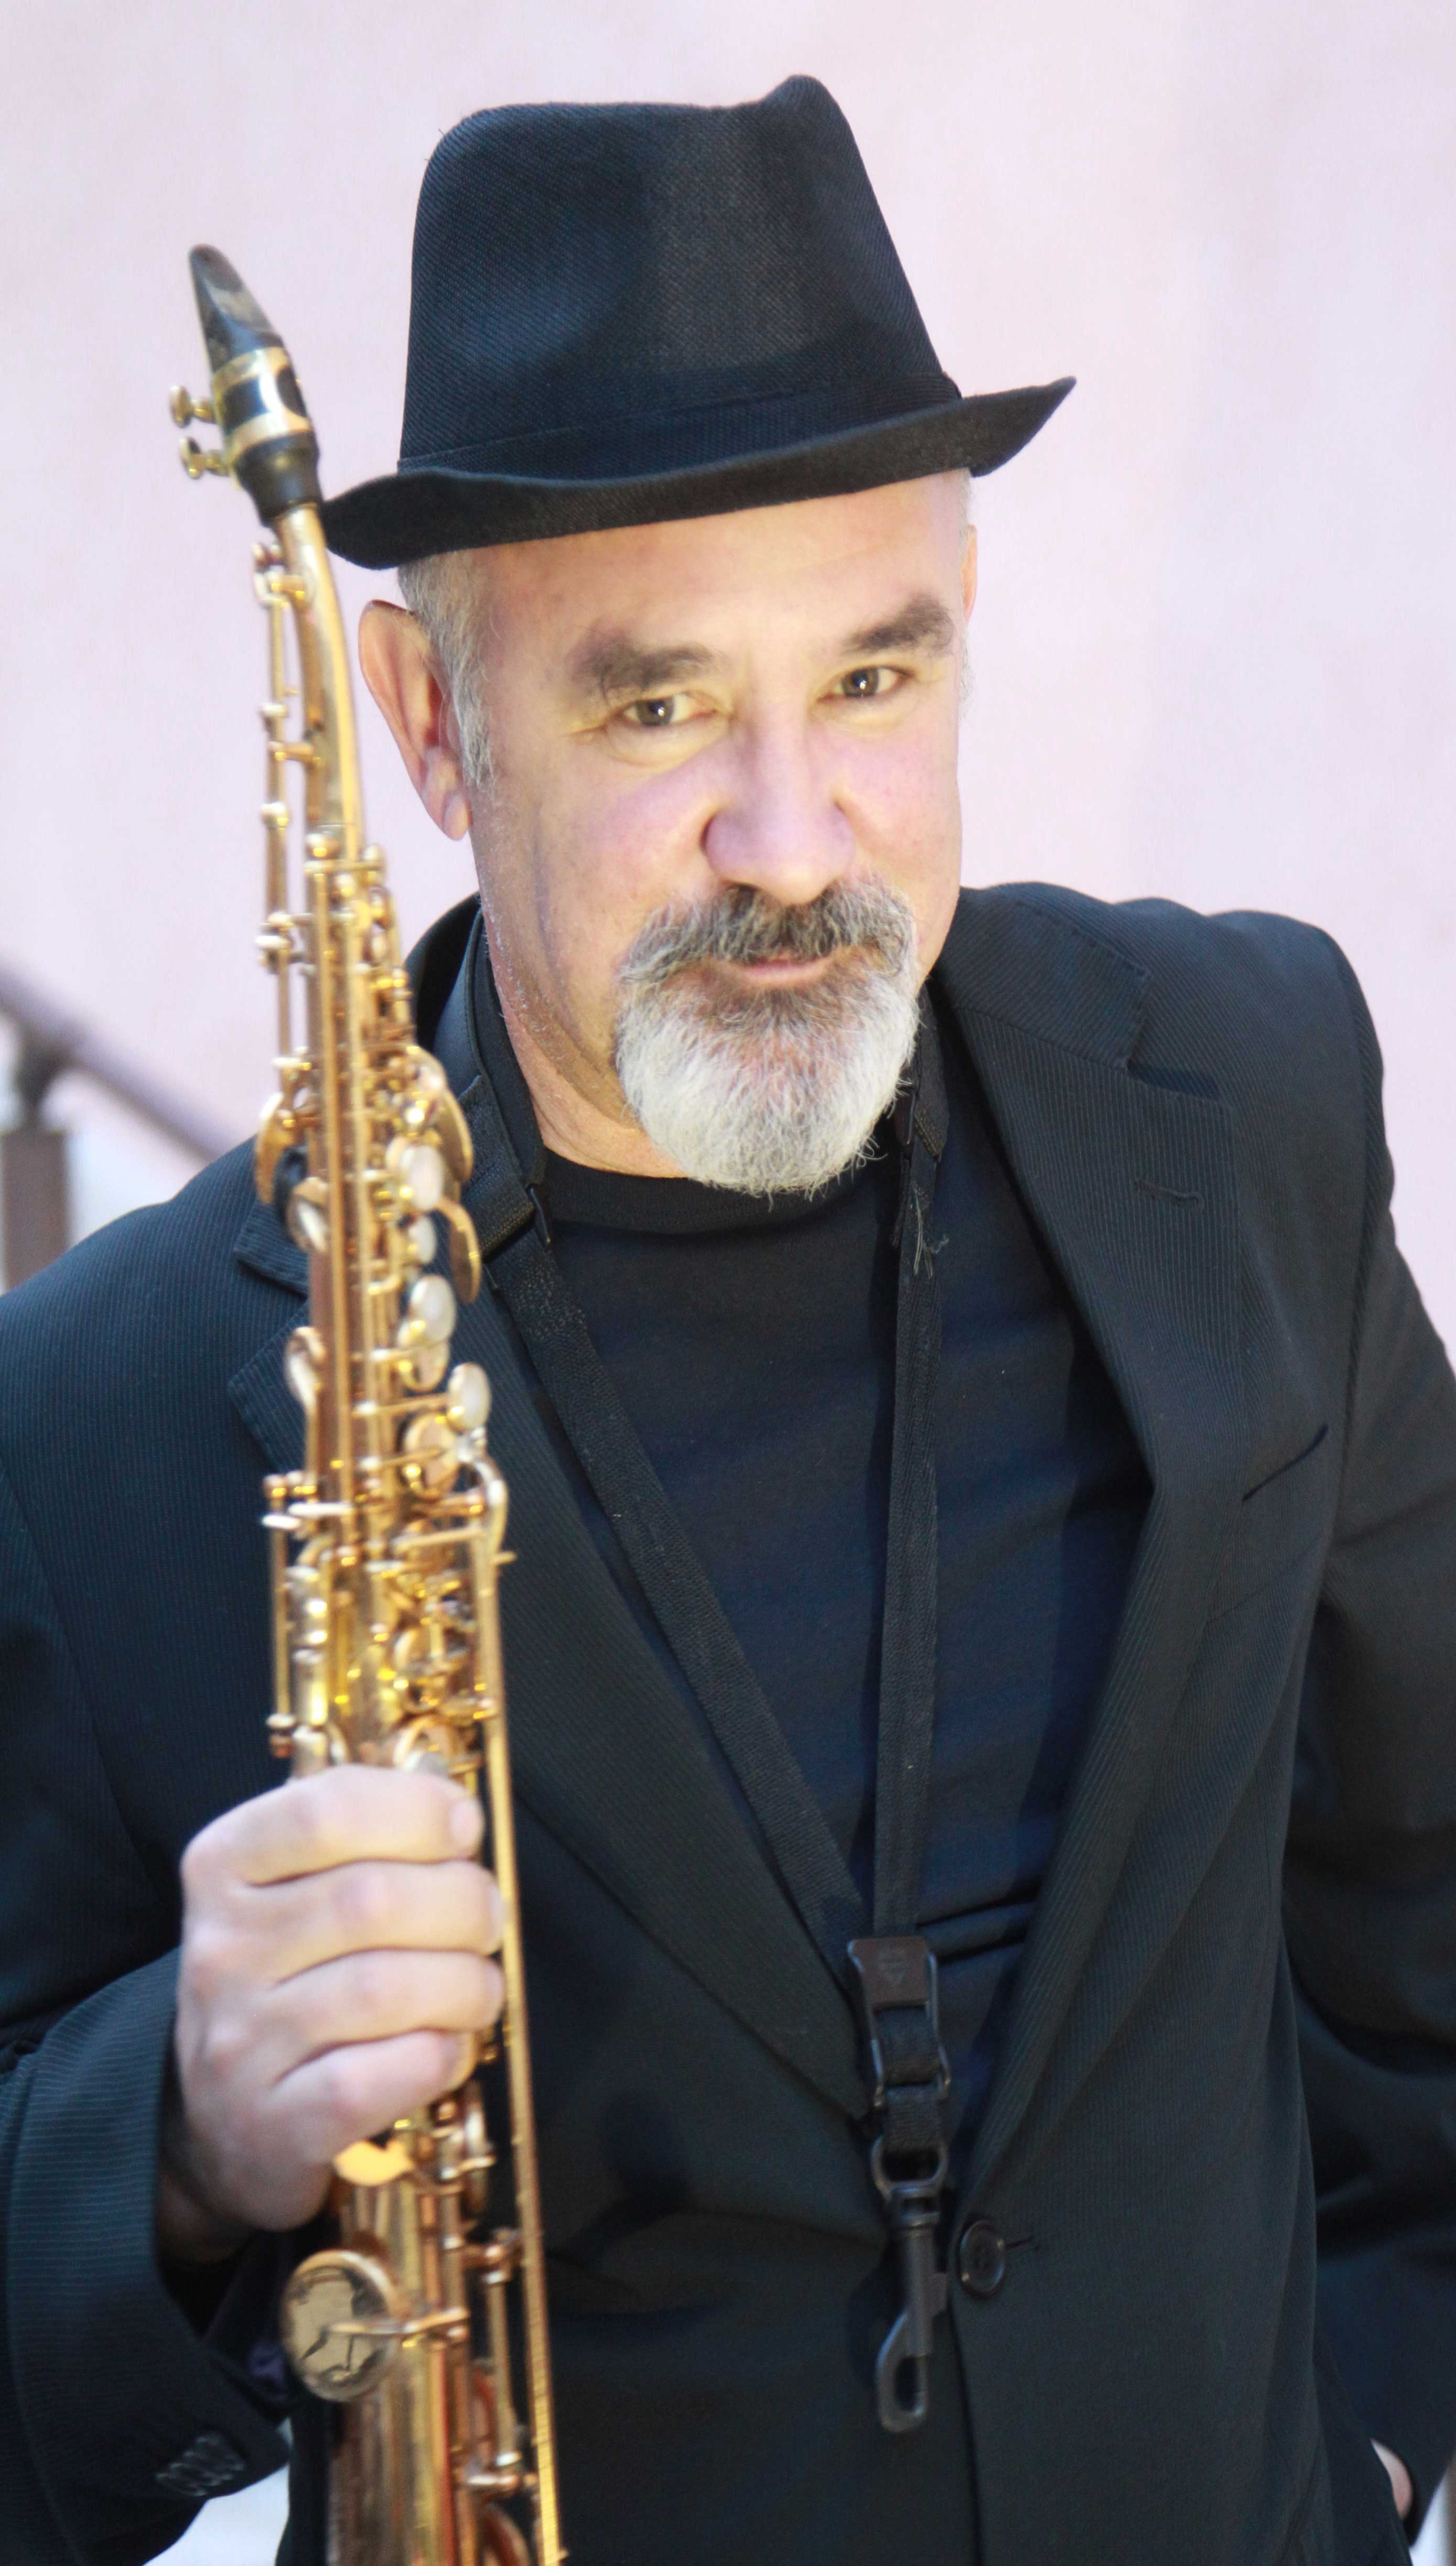 marco castelli sax player